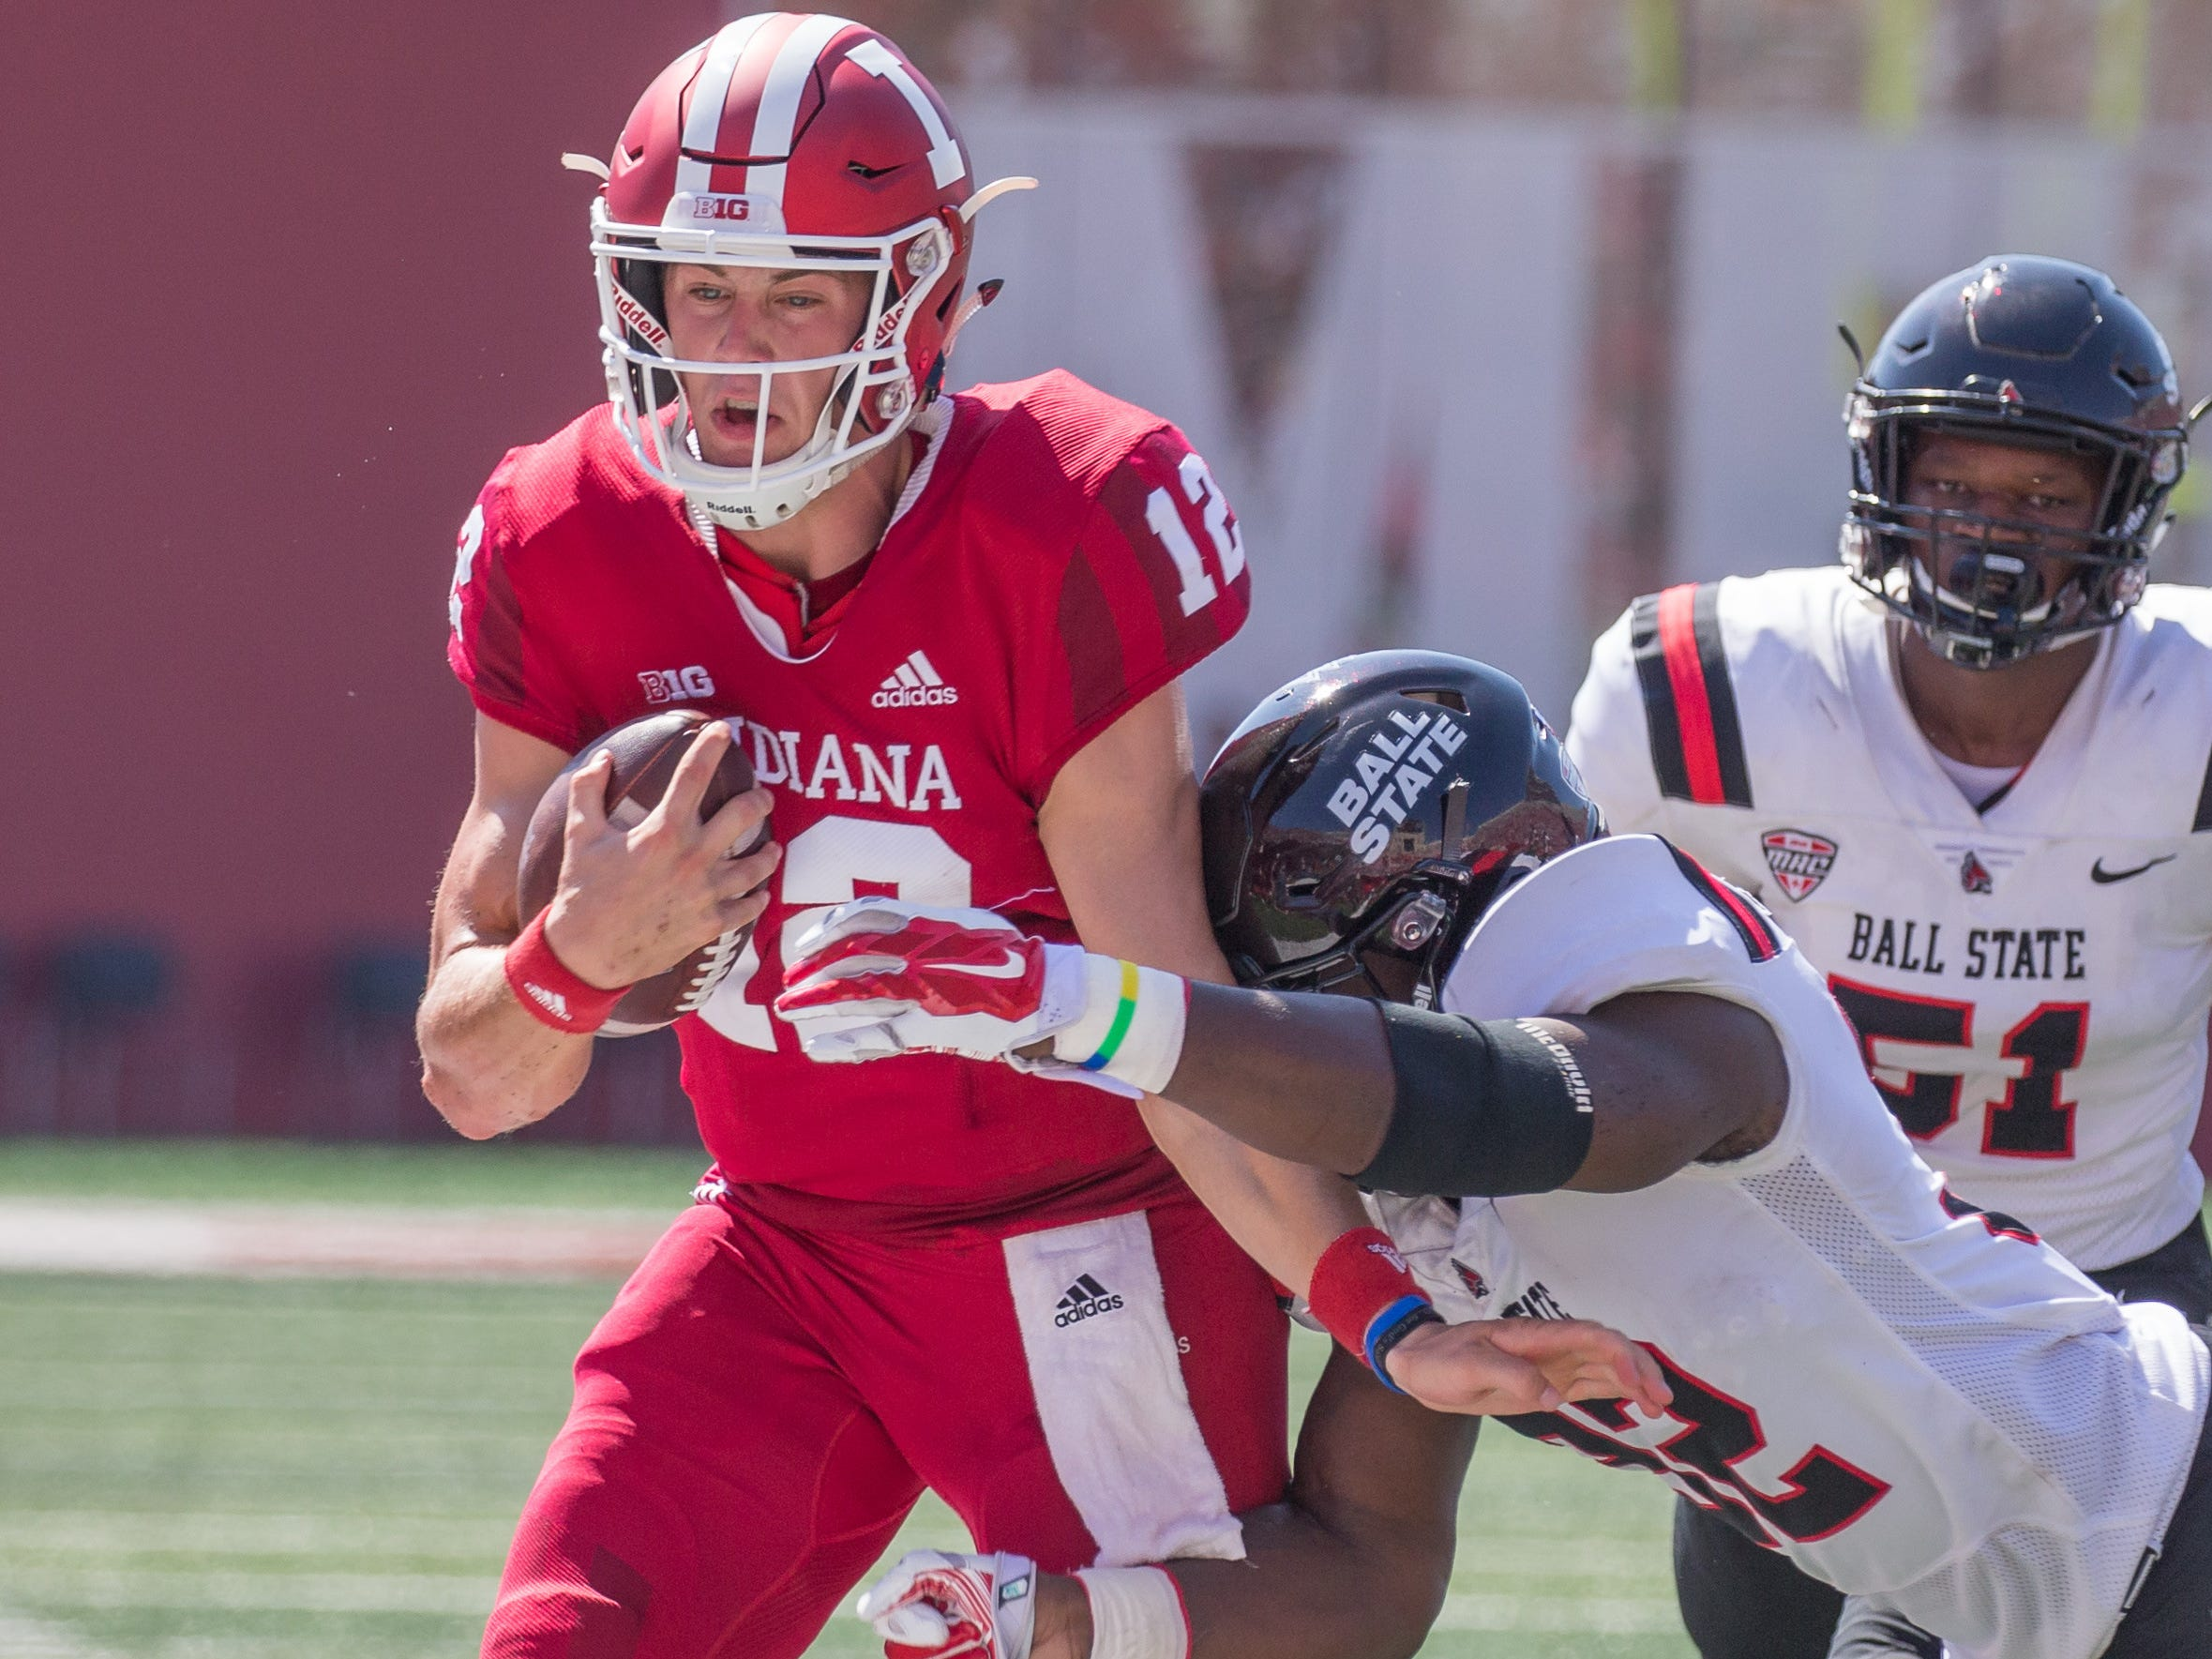 Indiana Hoosiers quarterback Peyton Ramsey (12) runs with the ball while Ball State Cardinals linebacker Jeremiah Jackson (32) tackles him in the first quarter at Memorial Stadium .